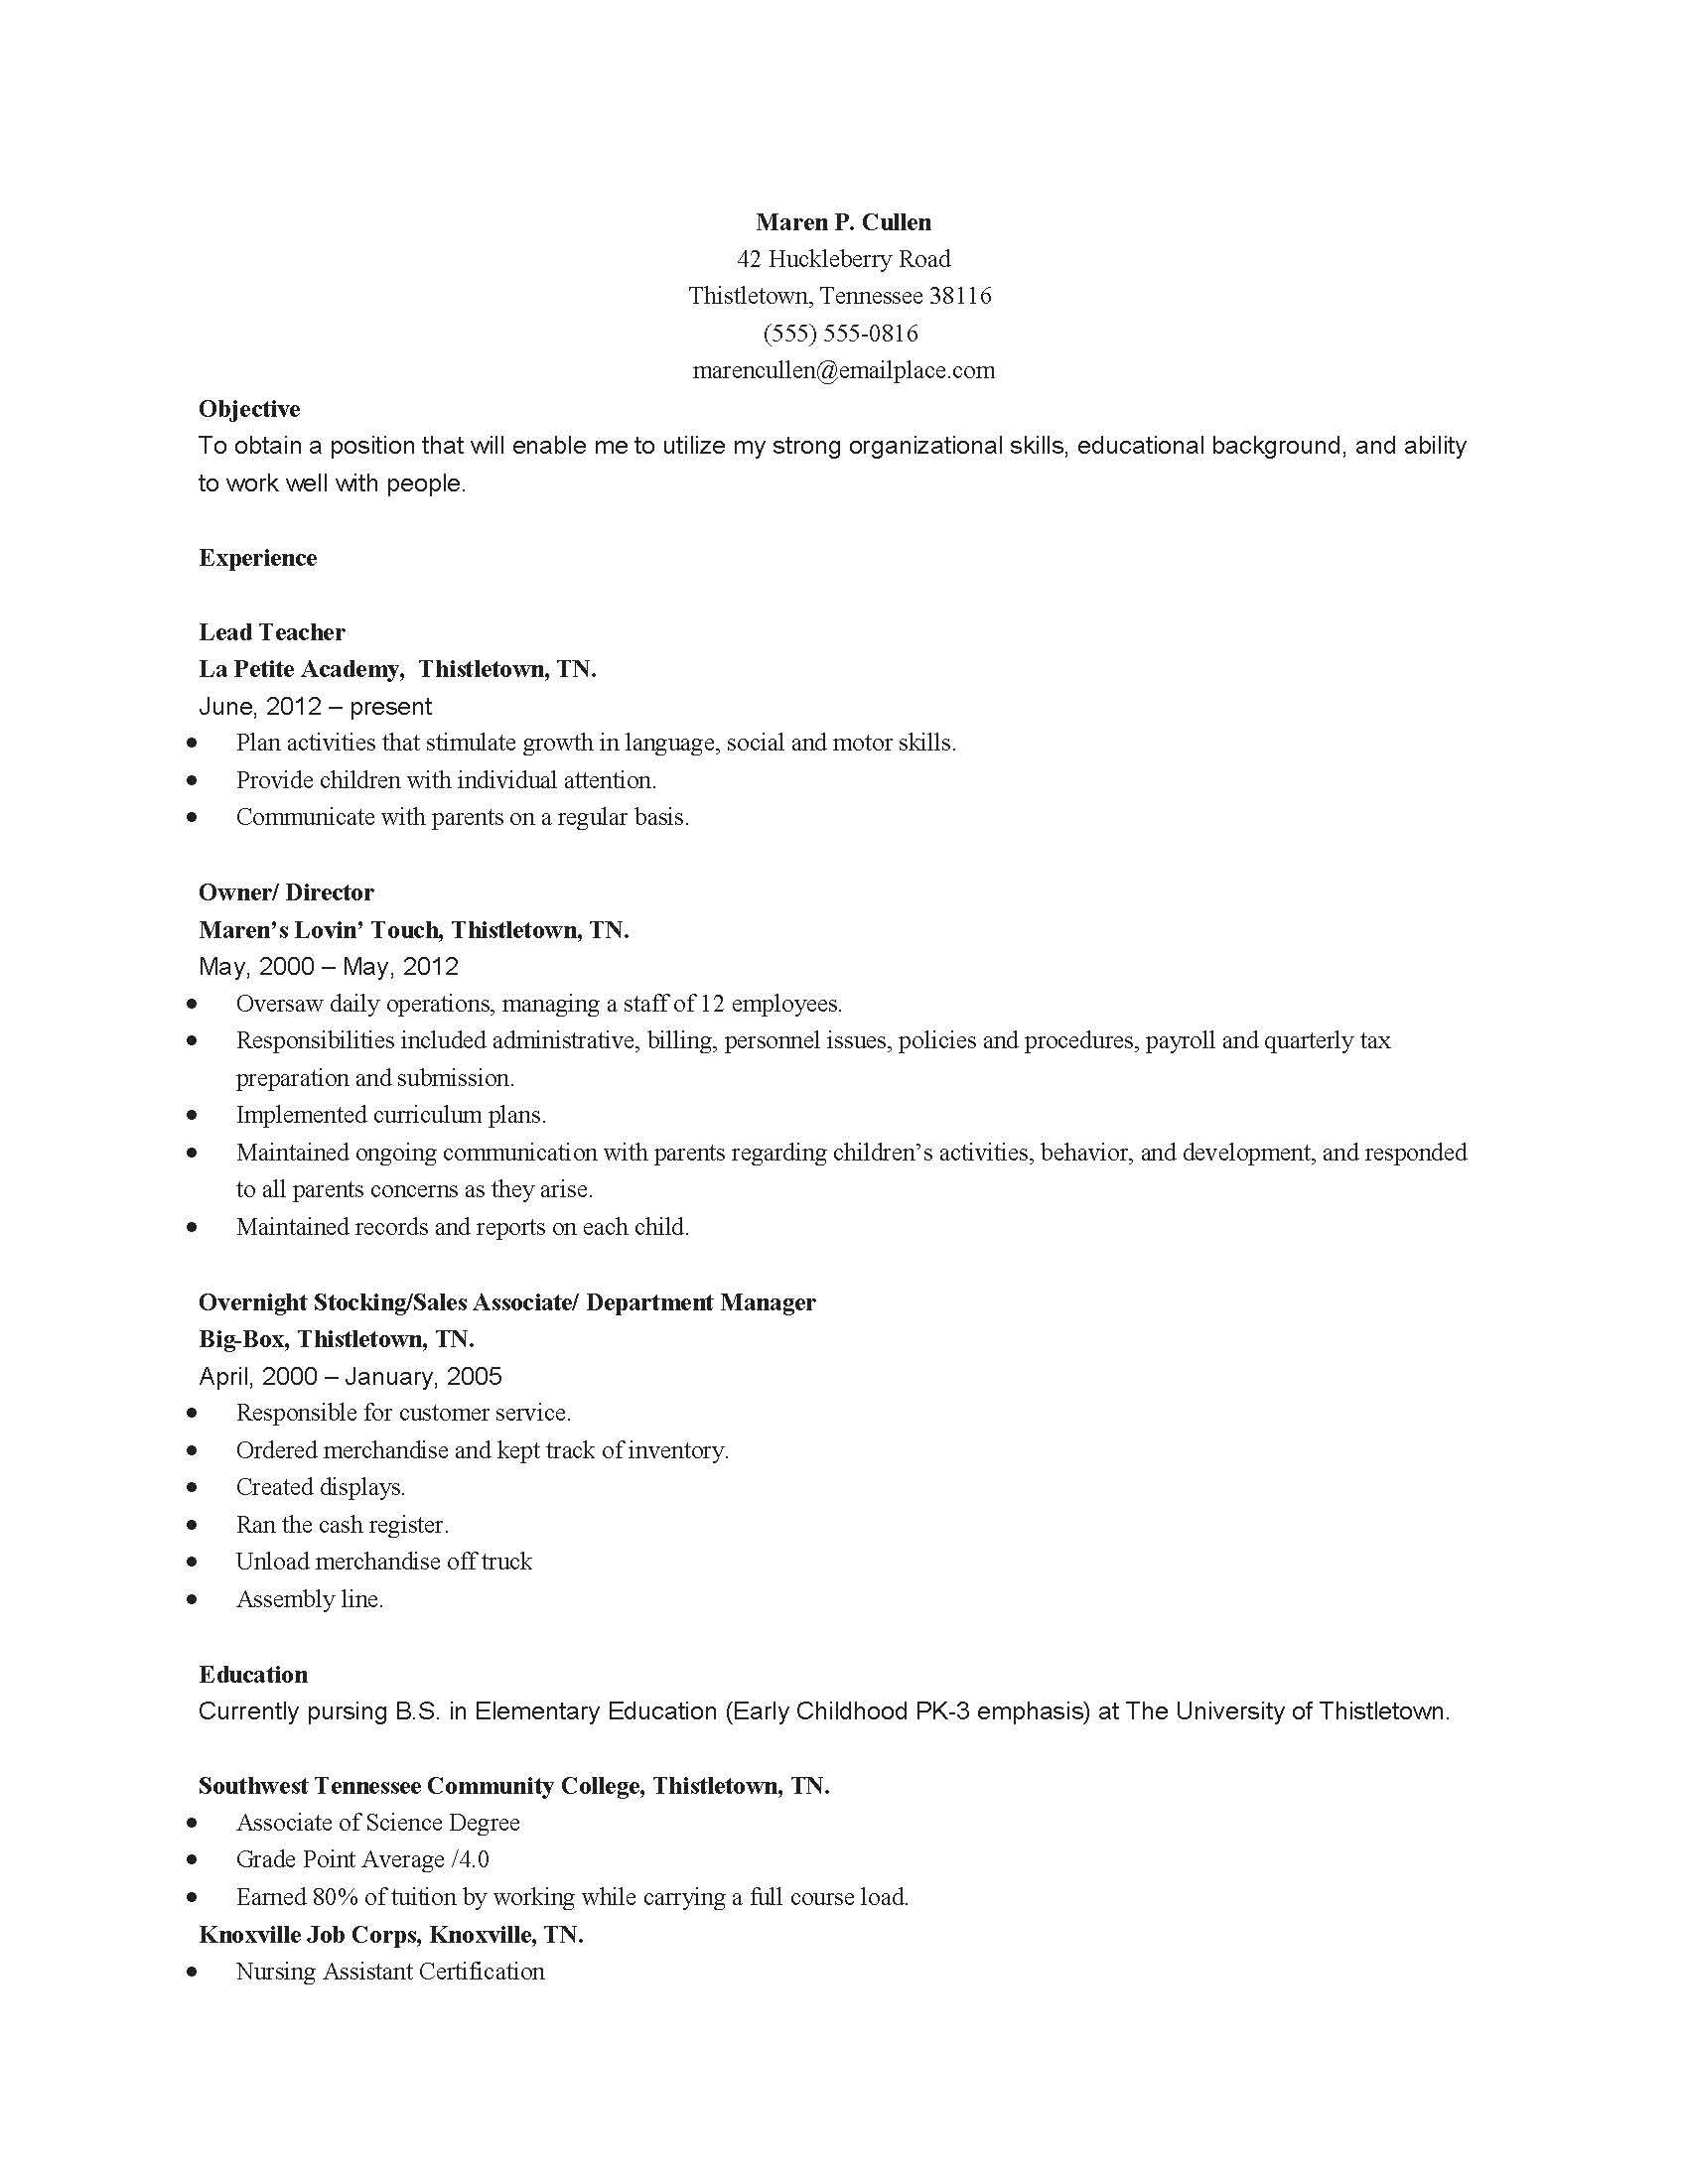 Parent Letter to Child Template - Resume Example for Teachers Resume Examples format